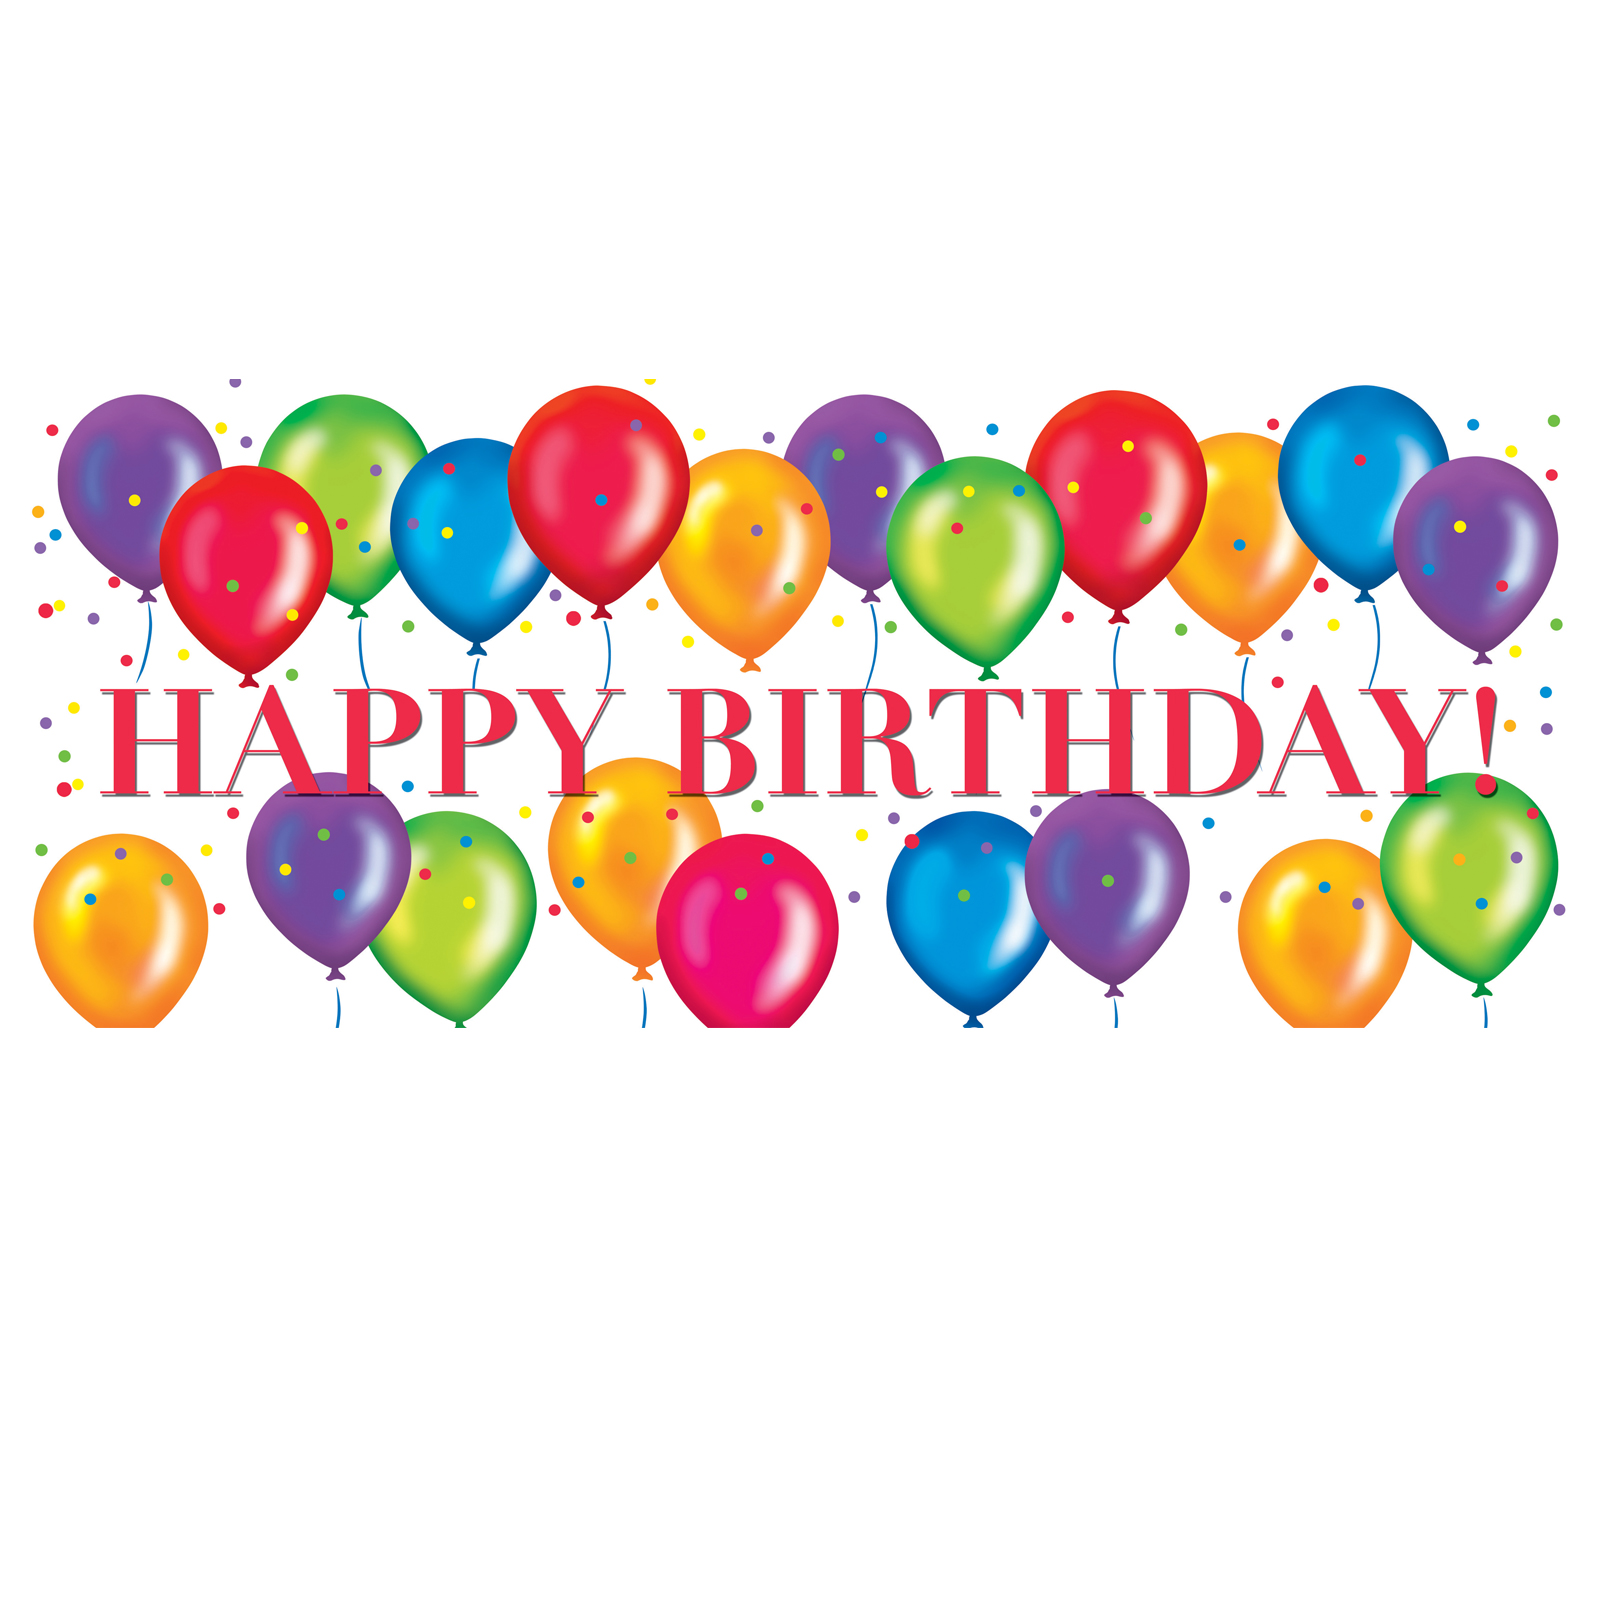 Free Birthday Art Cliparts, Download Free Clip Art, Free